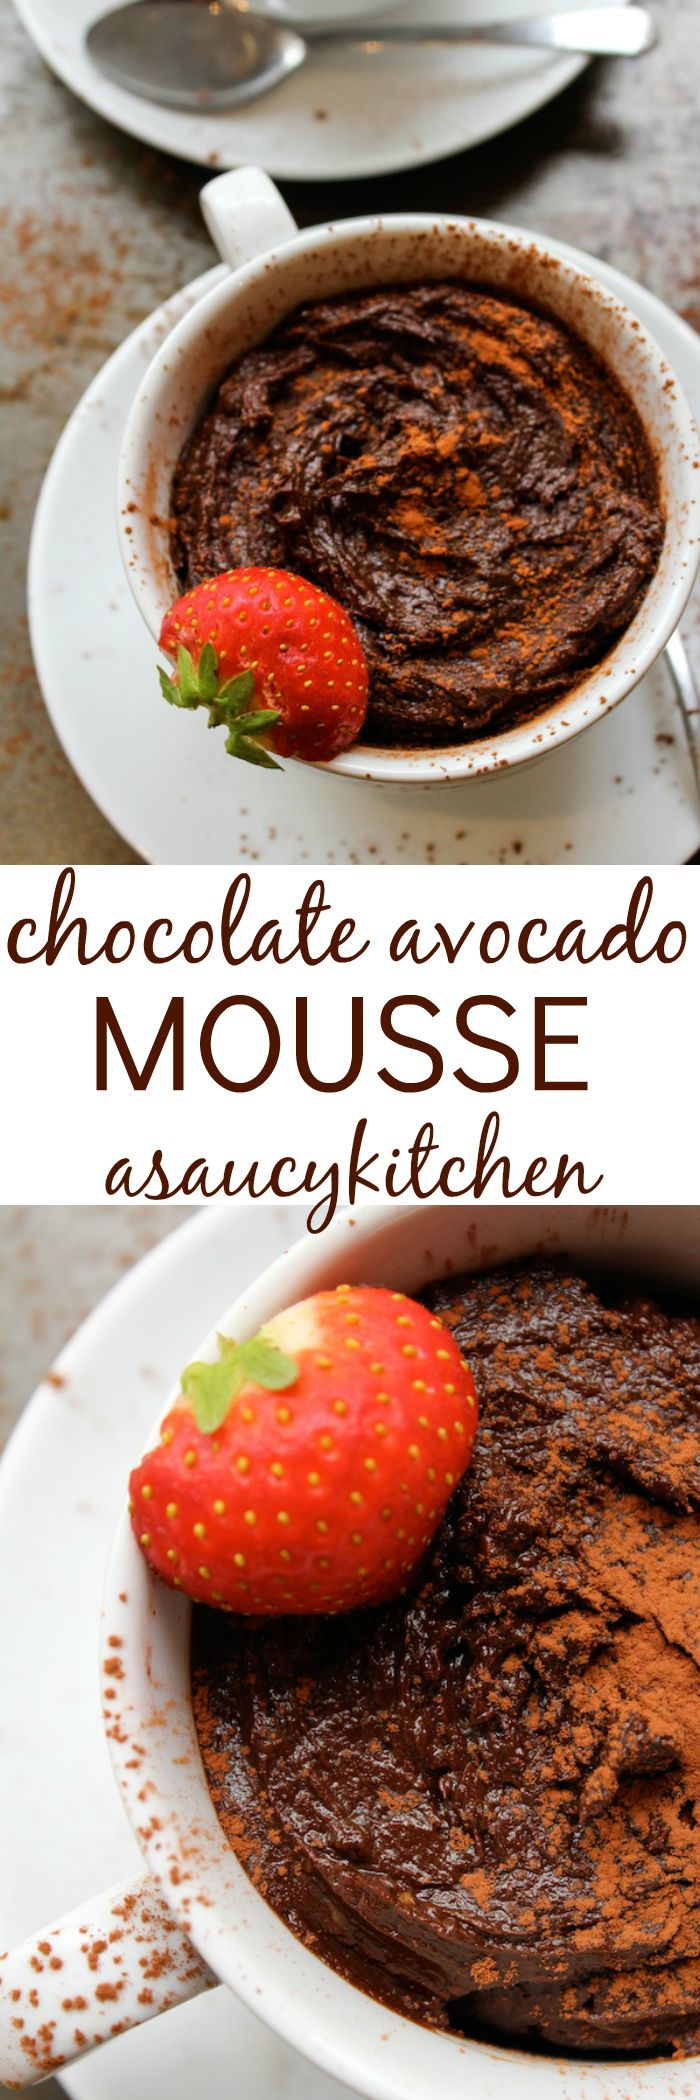 Chocolate Avocado Mousse - A Saucy Kitchen